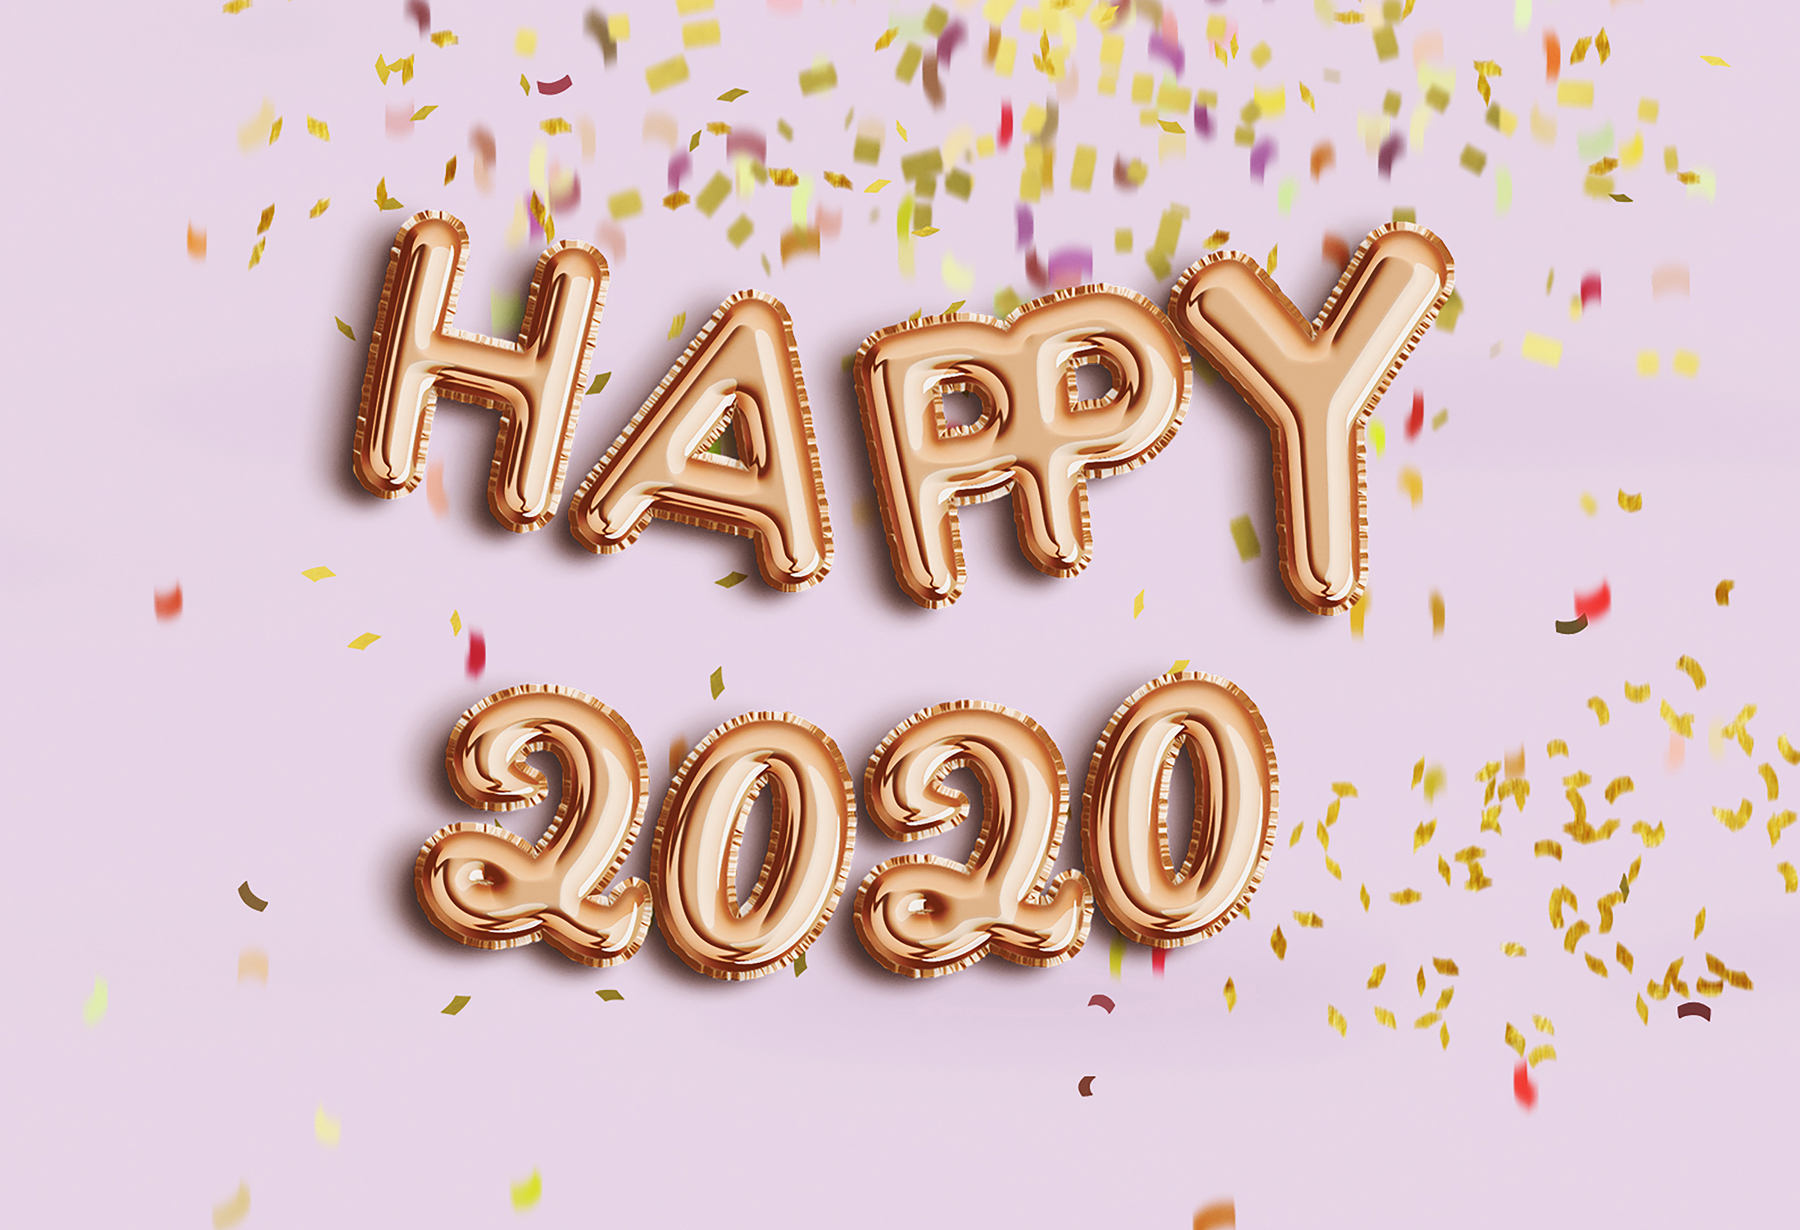 New Year's Quotes - 2020 inspirational, funny, happy New Year's Eve quotes